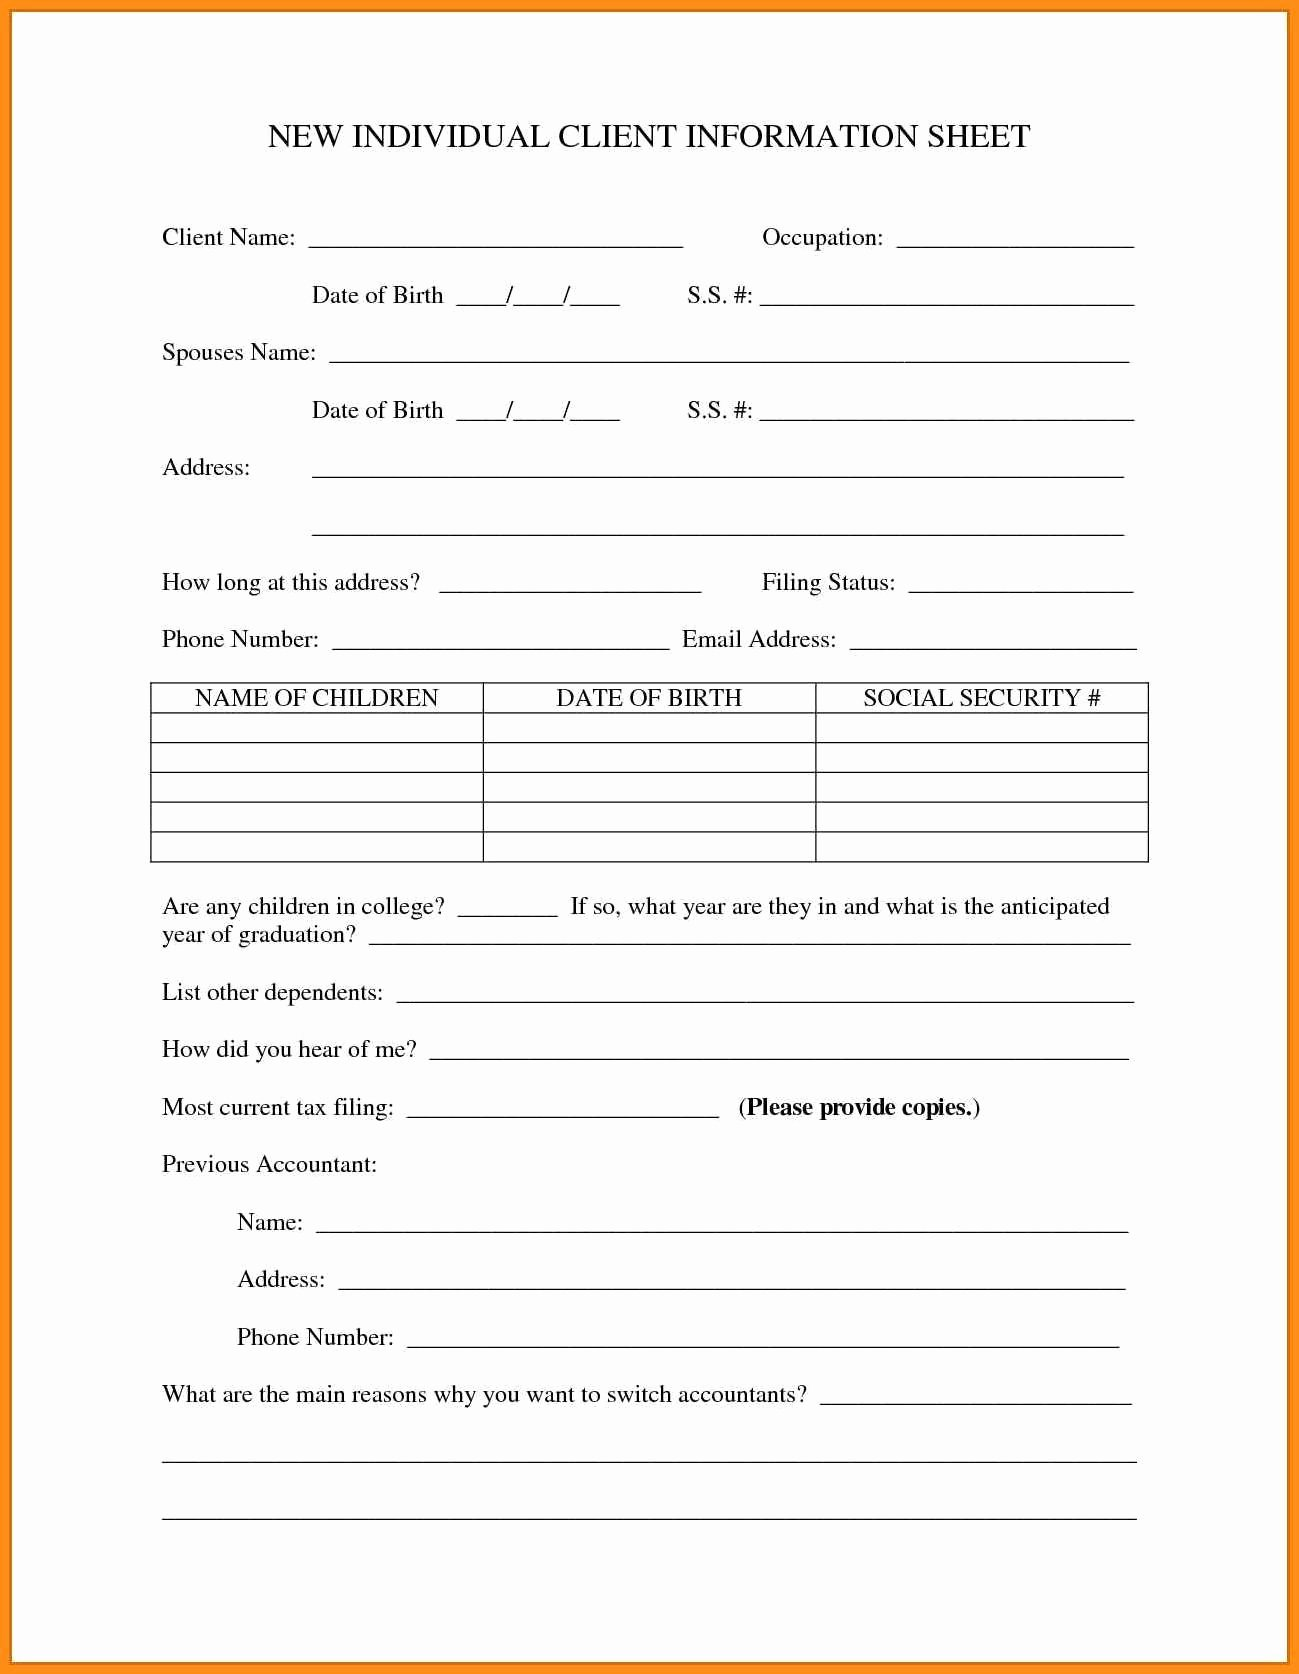 New Client form Template Lovely New Customer Information form Template Keni